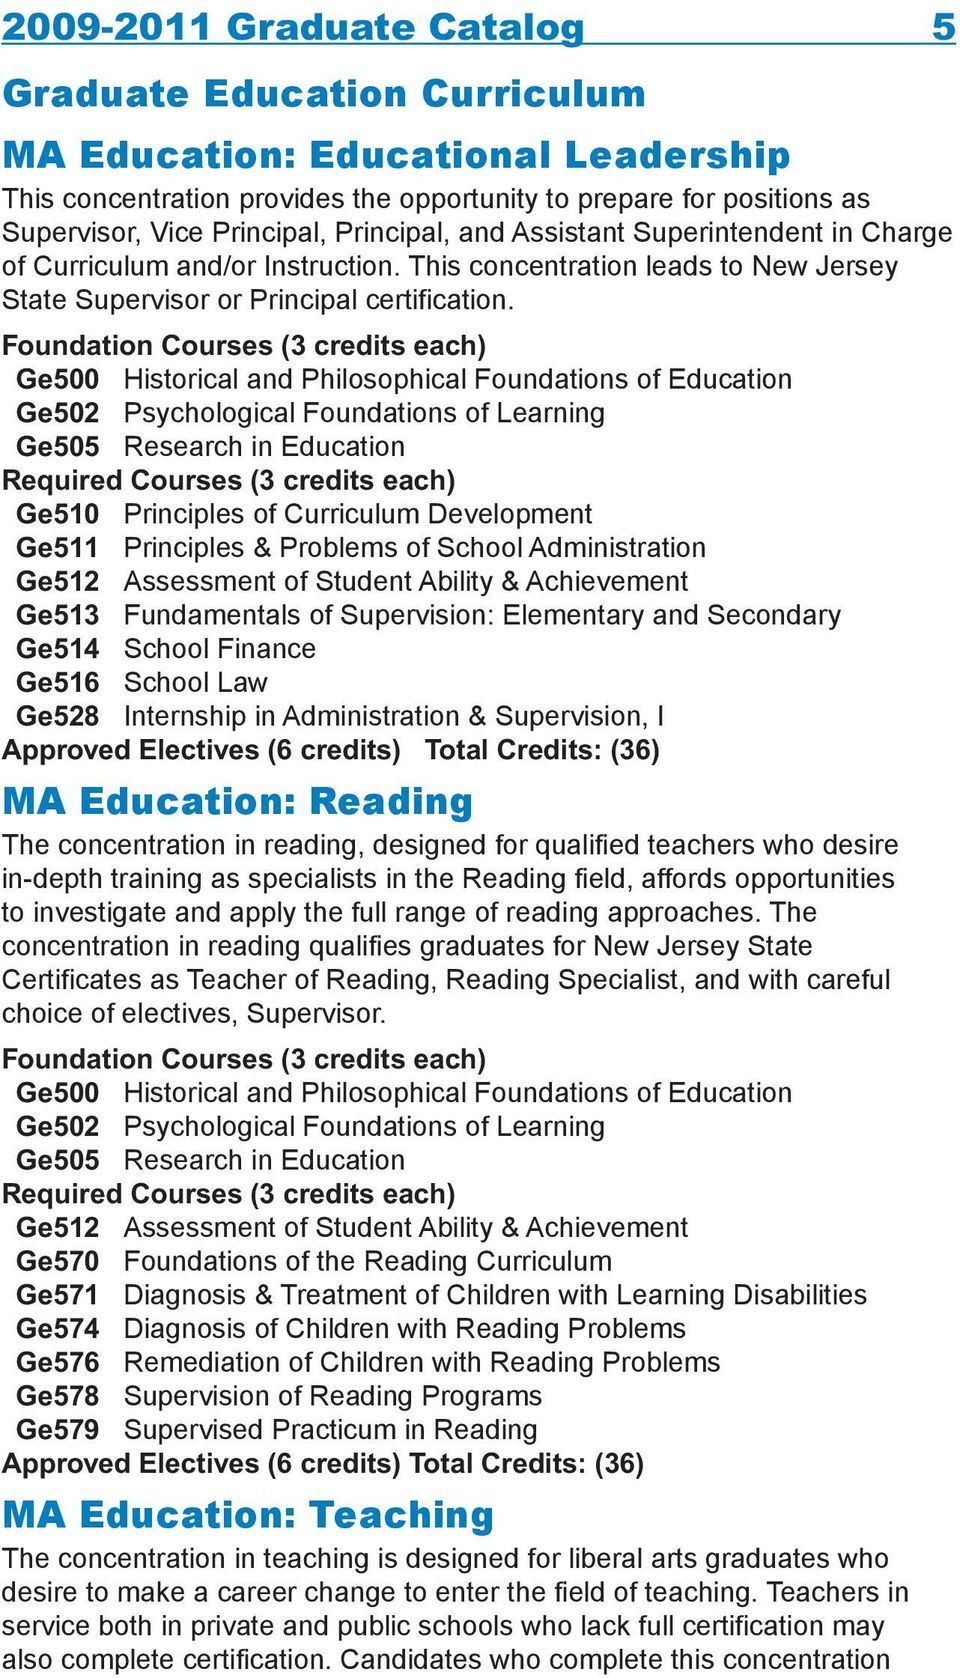 Foundation Courses (3 credits each) Ge500 Historical and Philosophical Foundations of Education Ge502 Psychological Foundations of Learning Ge505 Research in Education Required Courses (3 credits